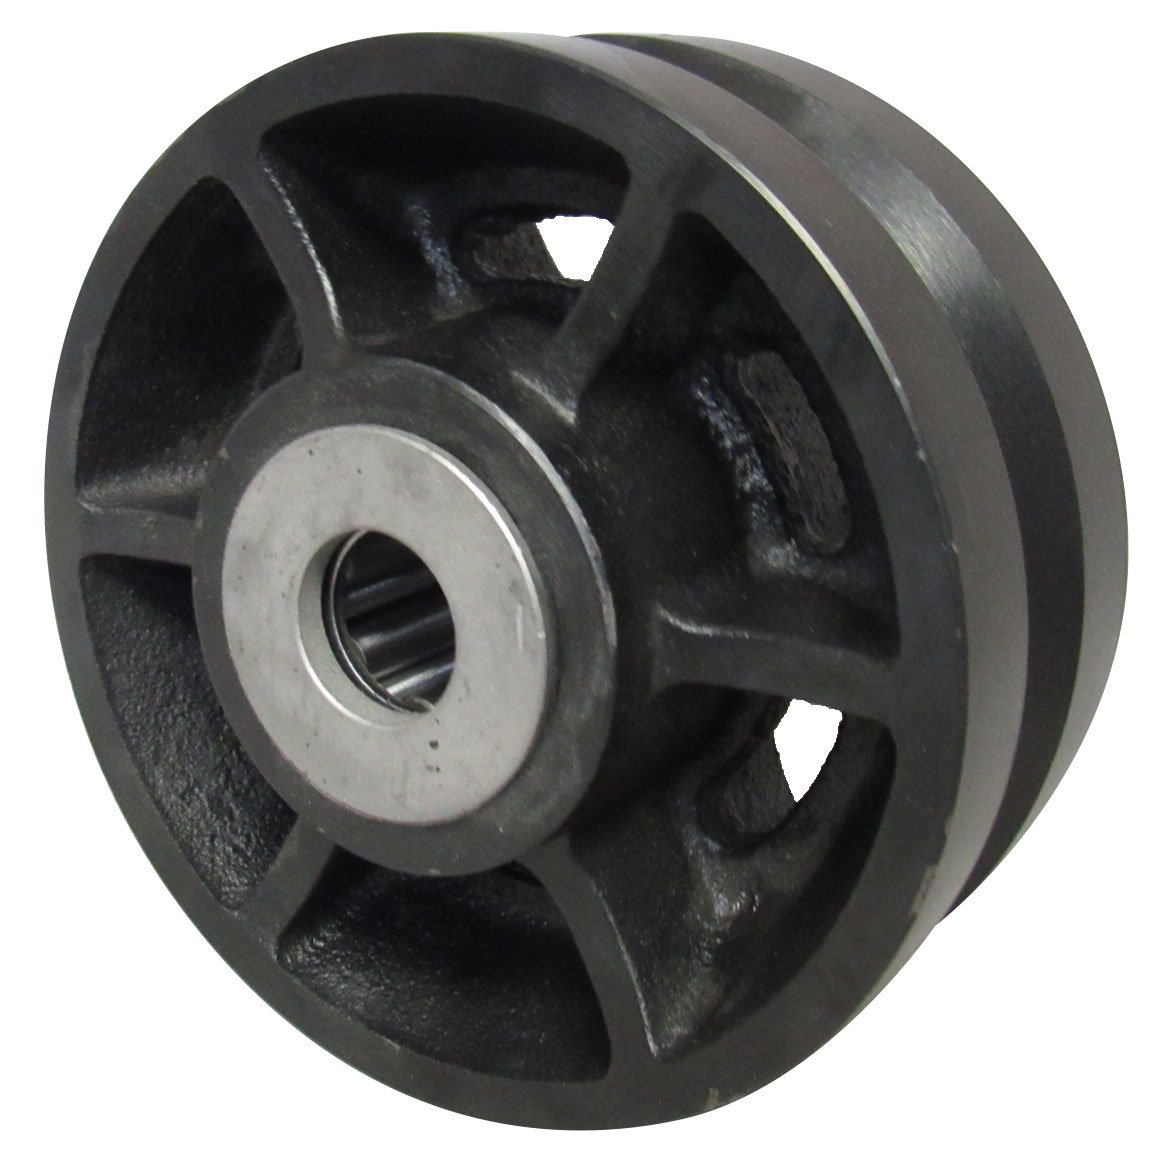 "B00426CK0G RWM Casters VIR-0625-12 6"" Diameter X 2-1/2"" Width Cast Iron V-Groove Wheel with Straight Roller Bearing, 2500 lbs Capacity 71gX7QuC-oL"